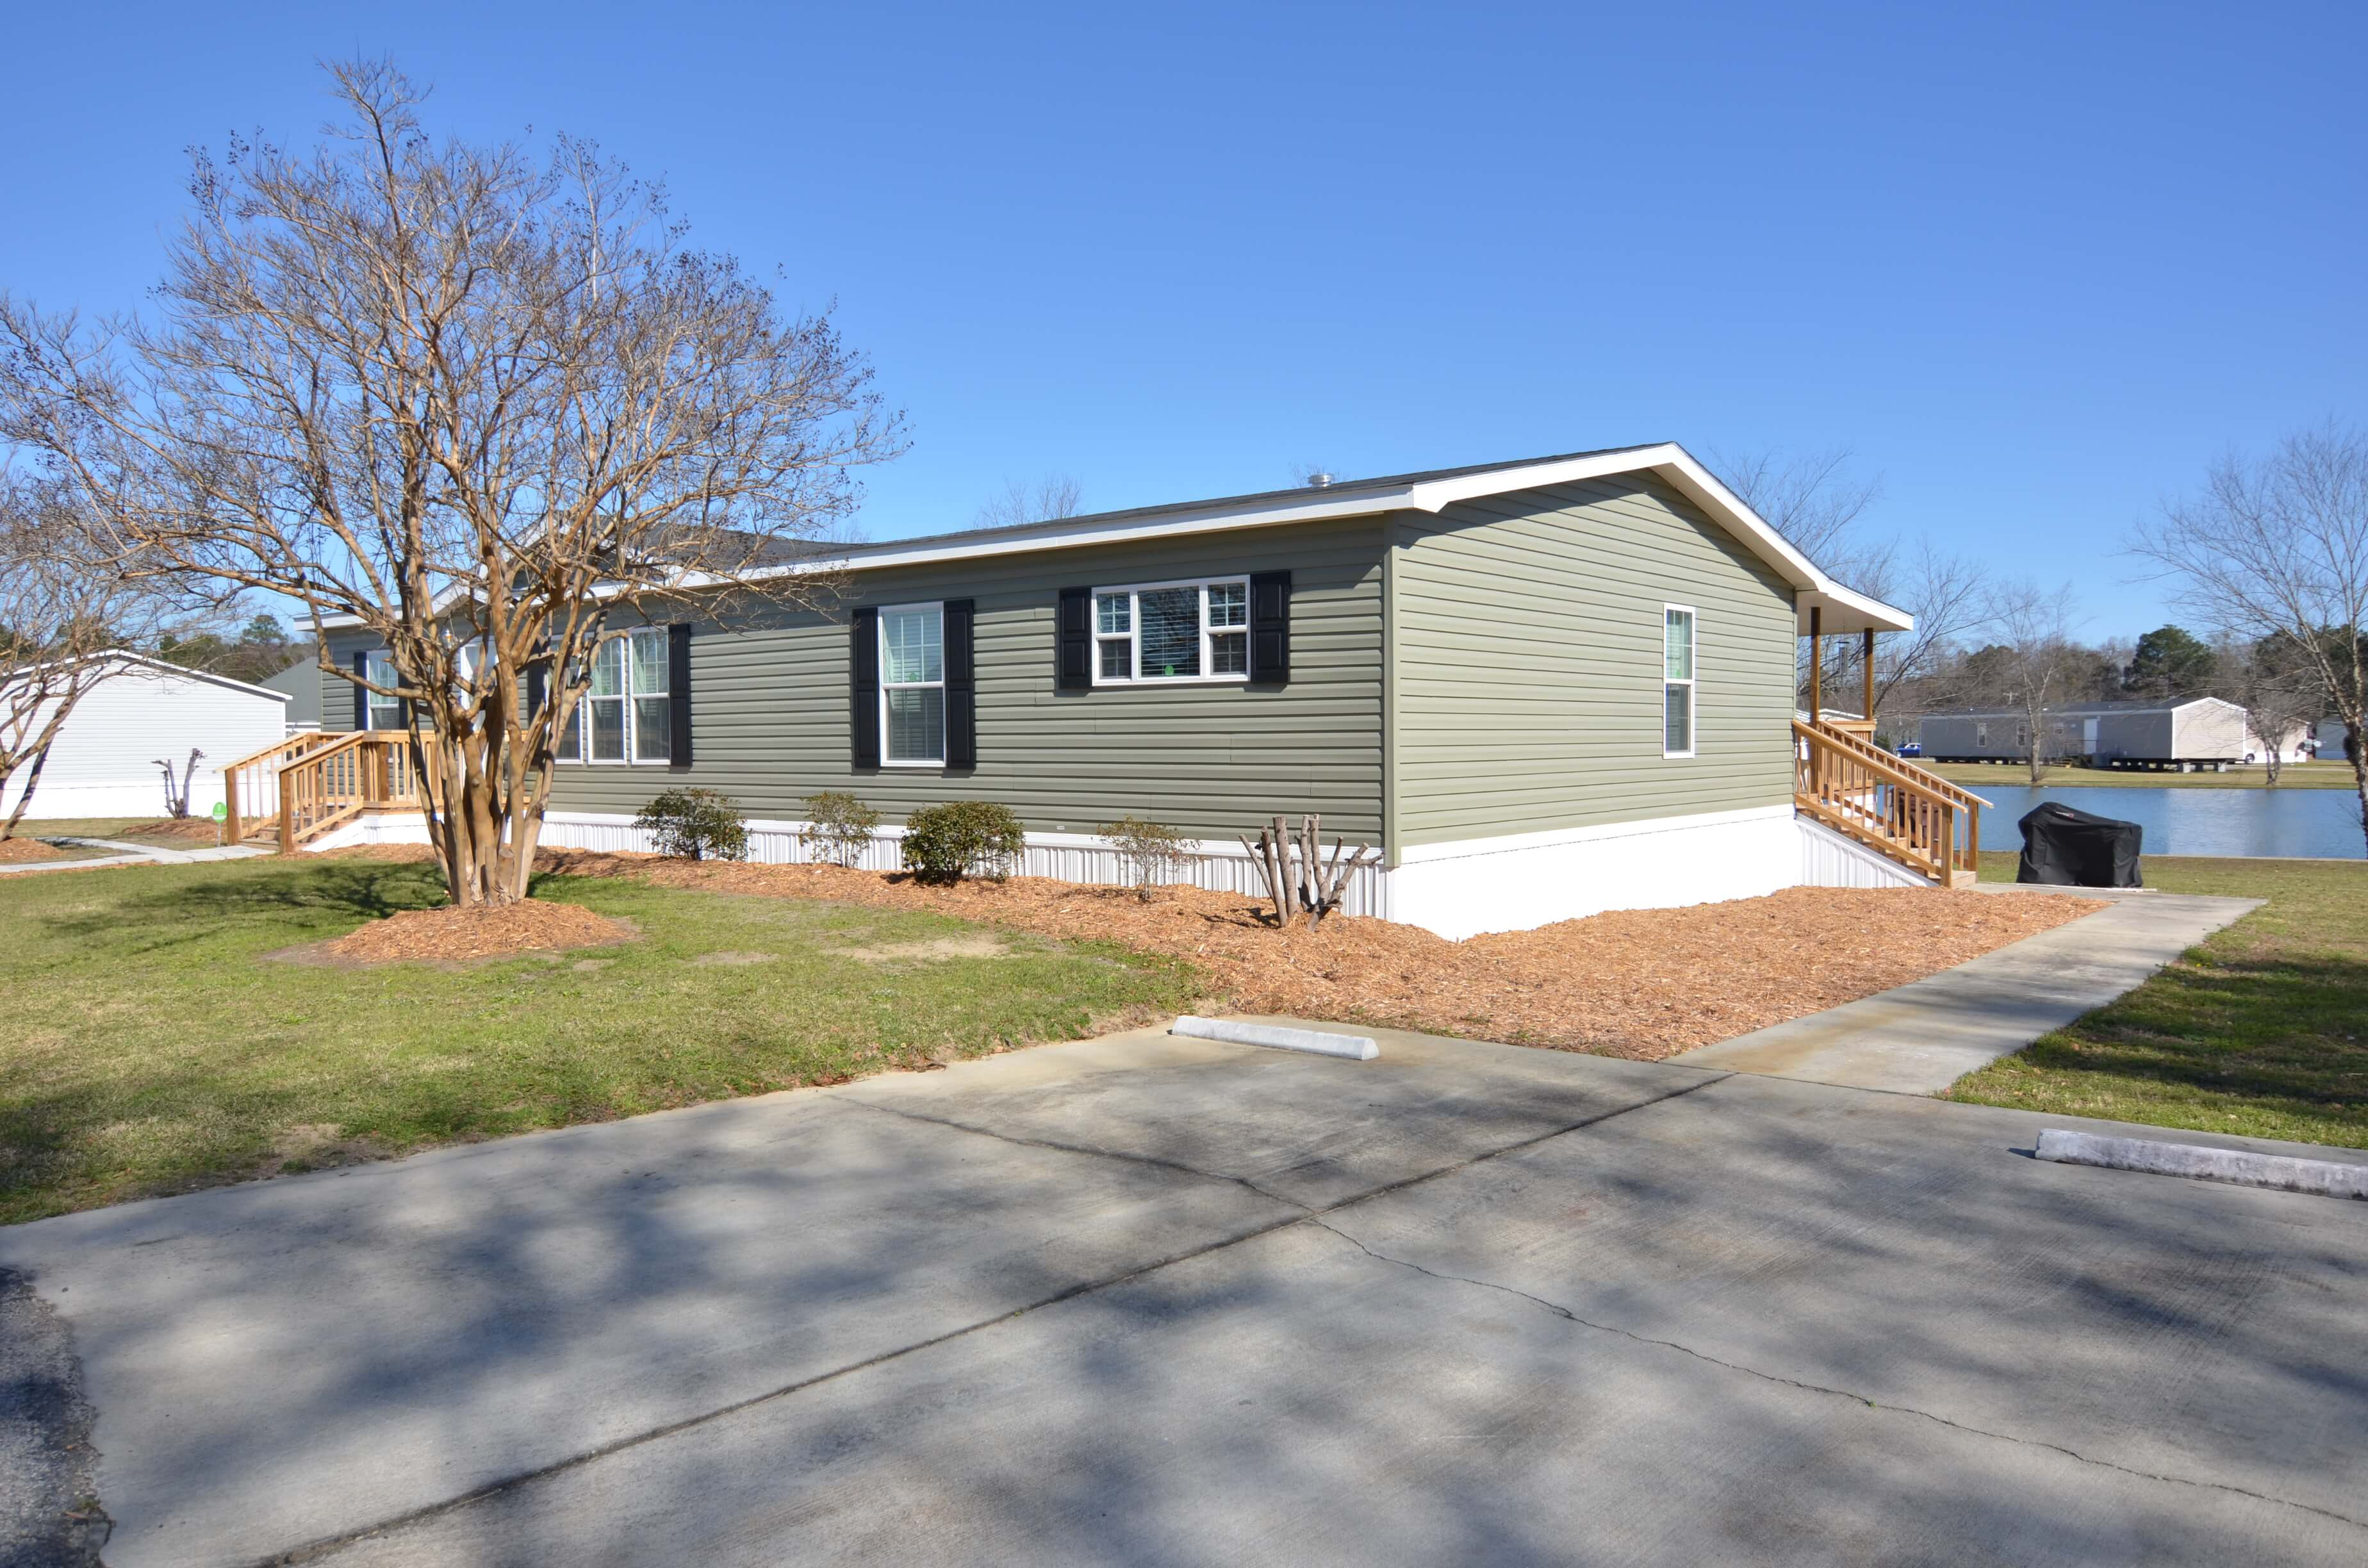 Manufactured Home Lots for Rent | Eagle Village | Statesboro GA on